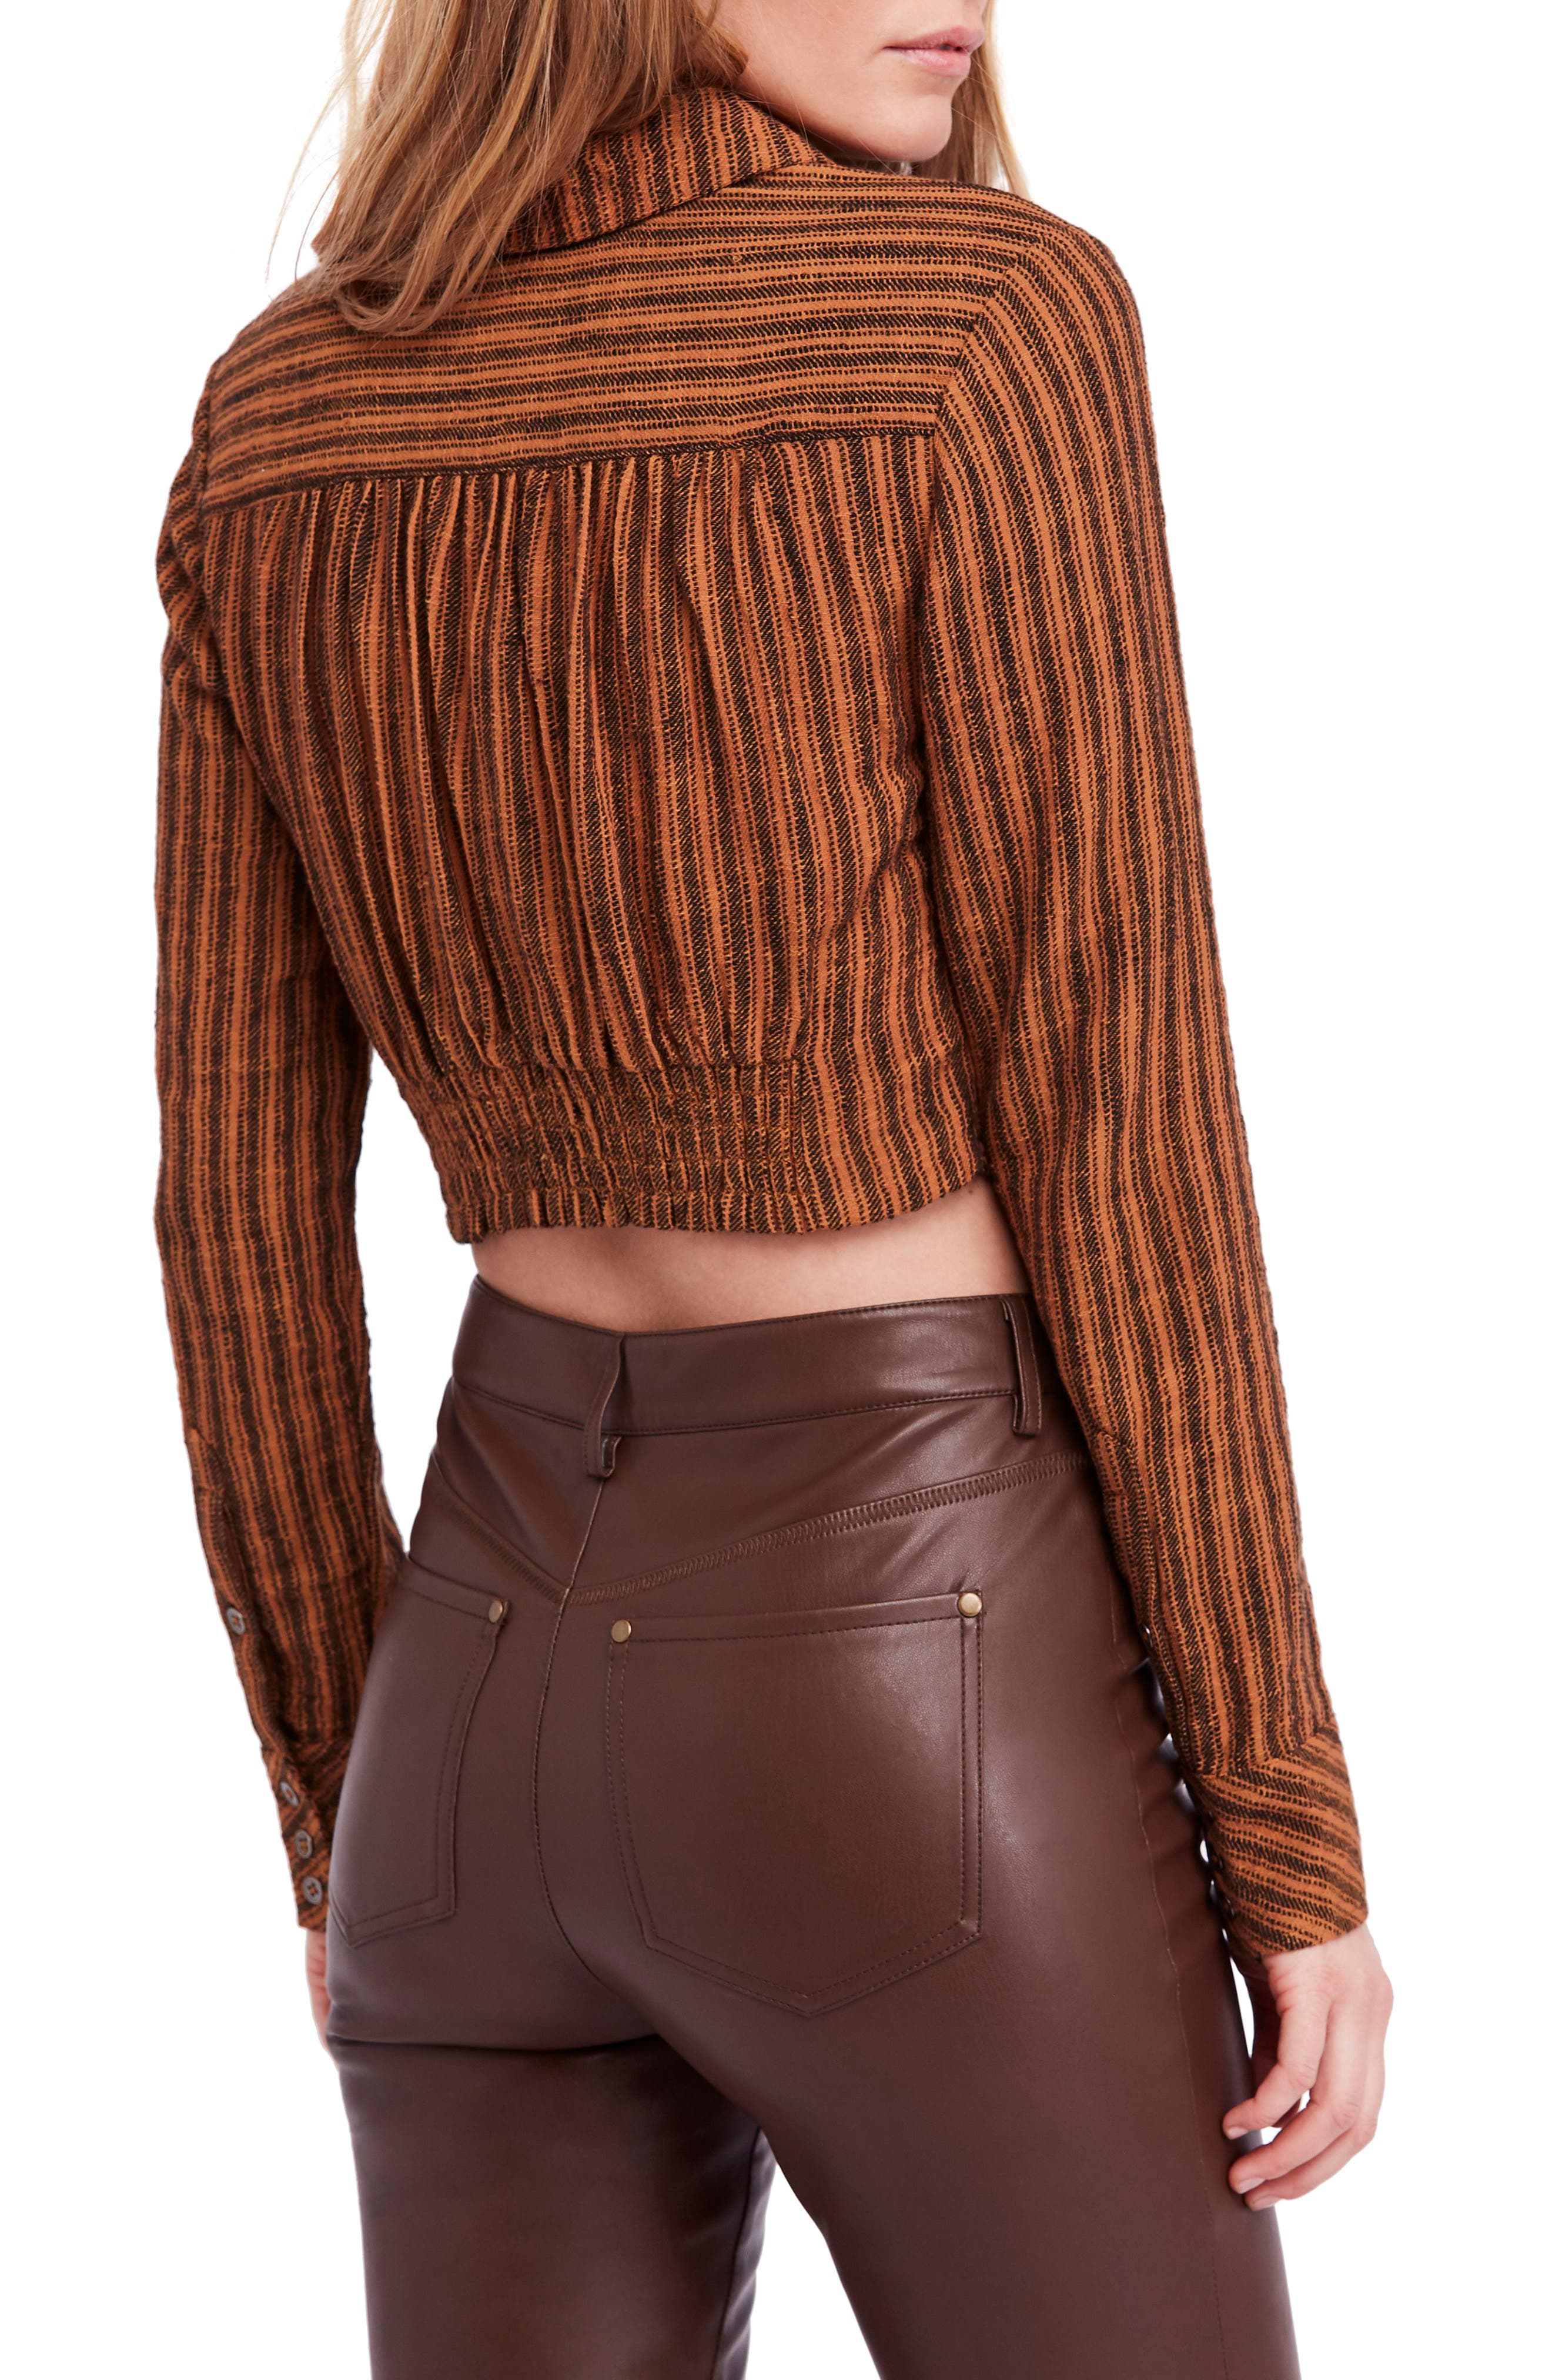 FREE PEOPLE,                             Lust for Life Twist Top,                             Alternate thumbnail 2, color,                             205